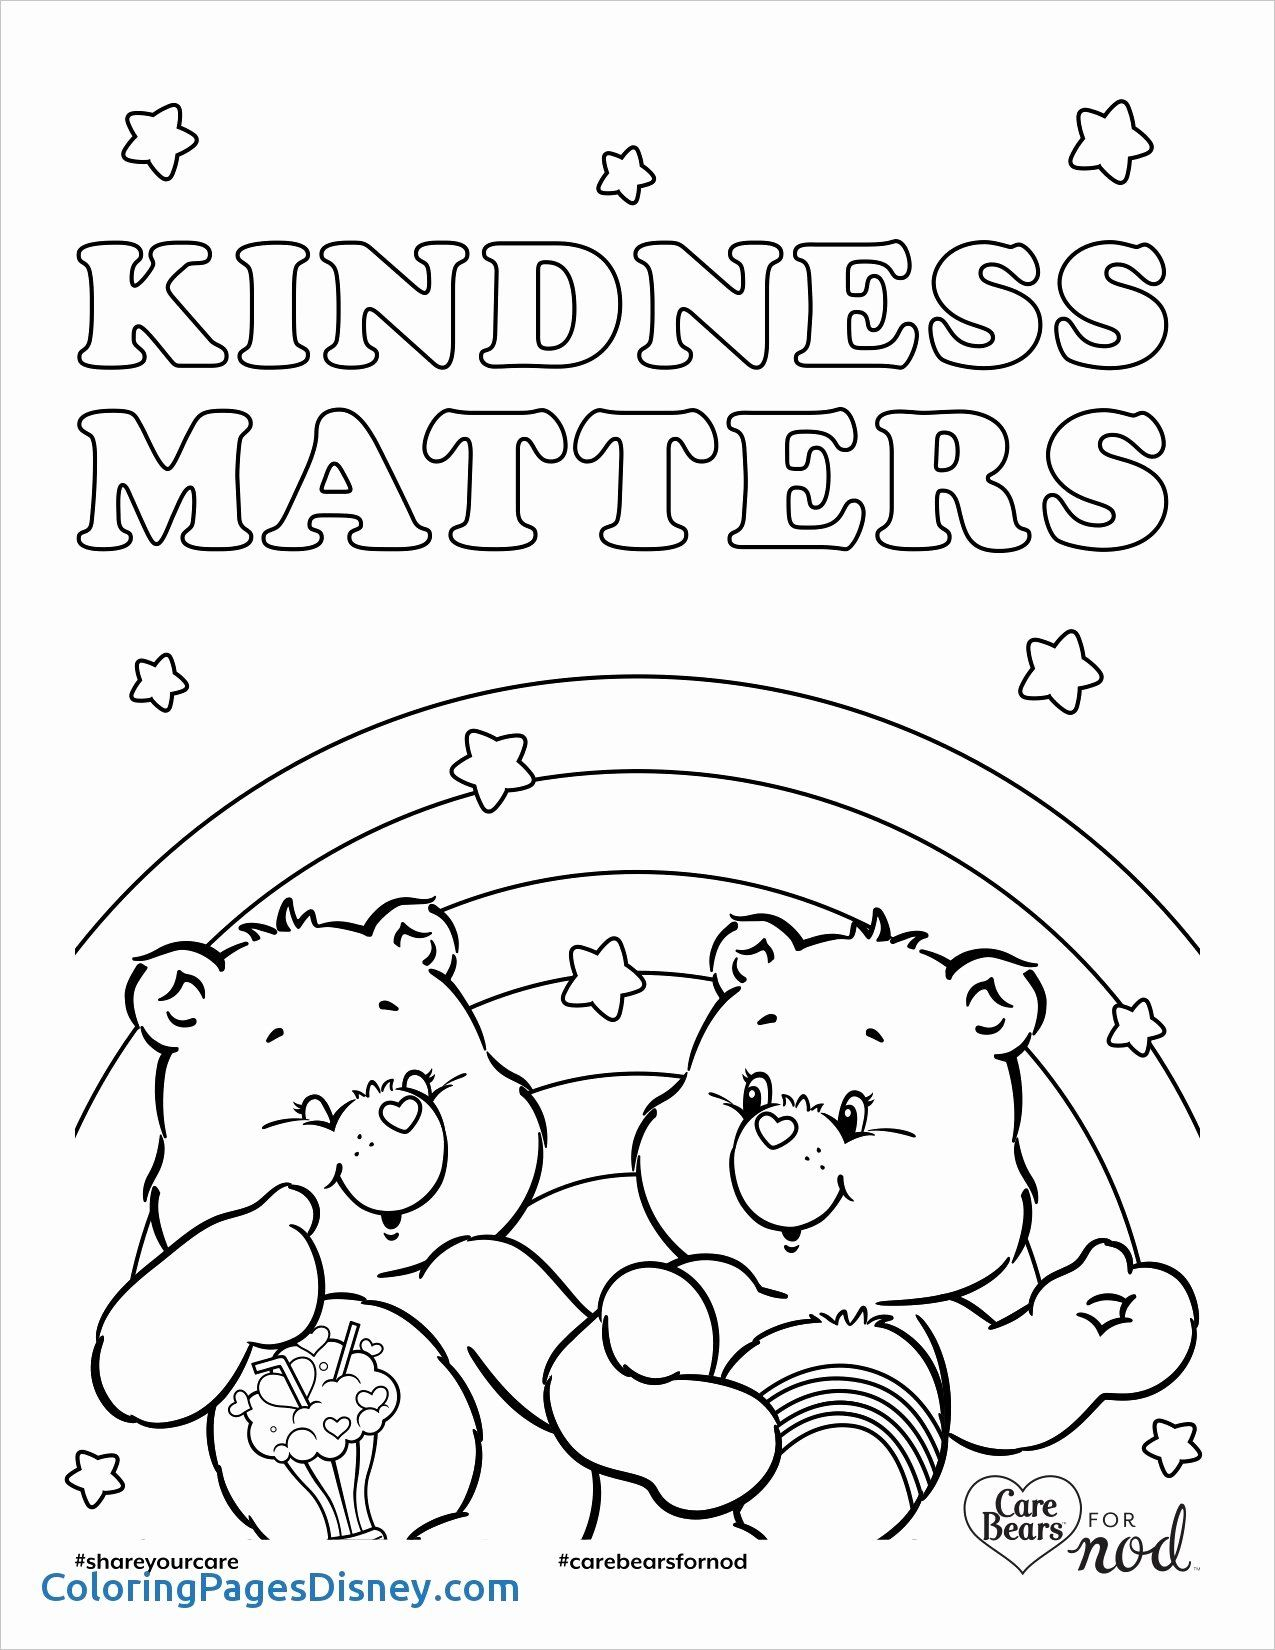 Coloring Page Fruits Of The Spirit Fresh Showing Kindness Coloring Pages Bear Coloring Pages Teddy Bear Coloring Pages Disney Princess Coloring Pages